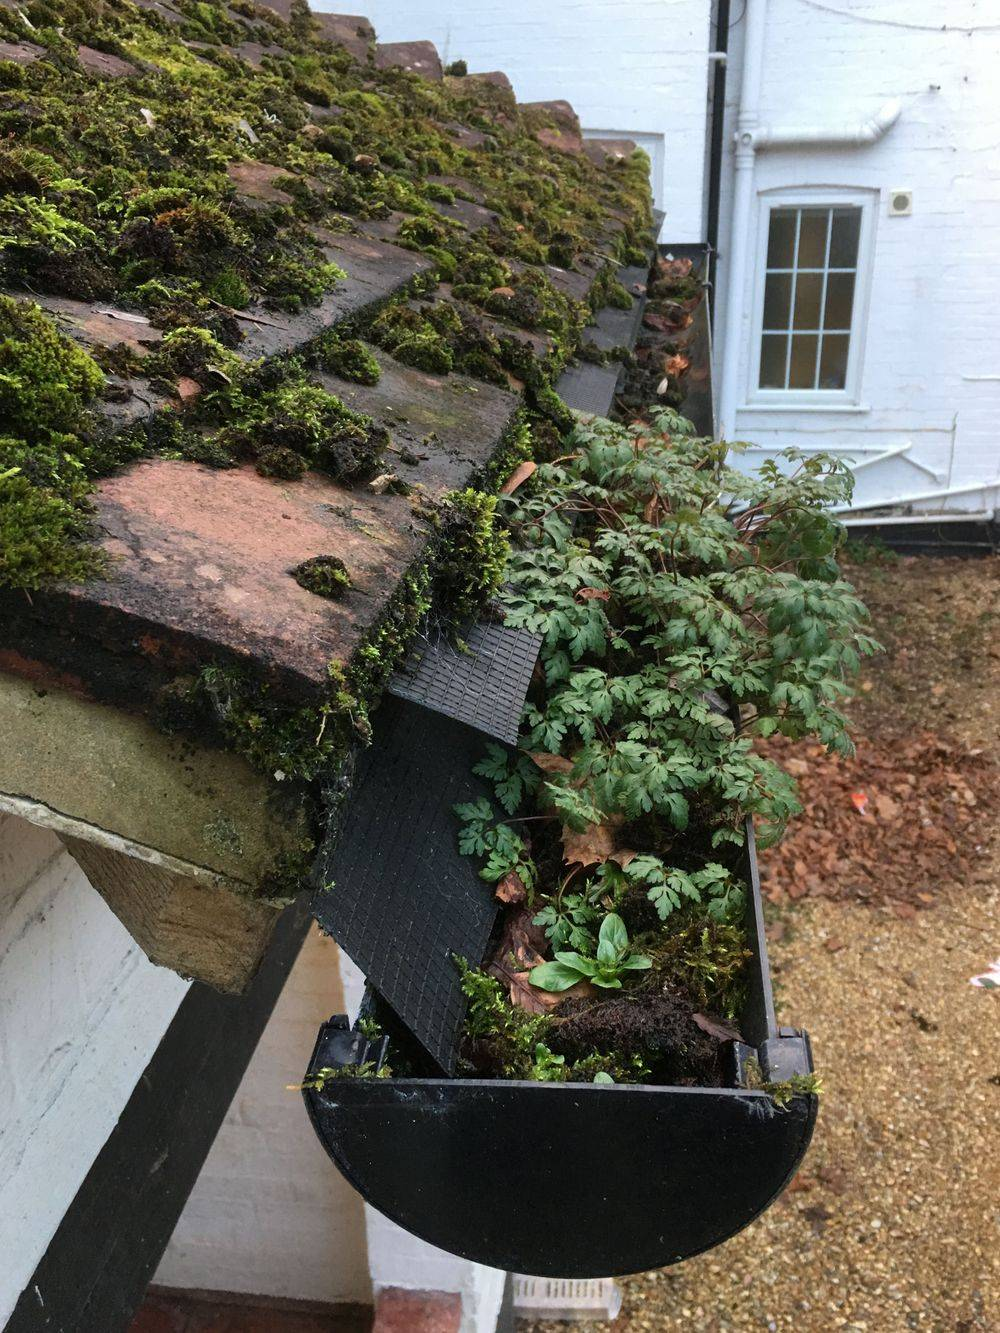 Gutter cleaning plants blockages